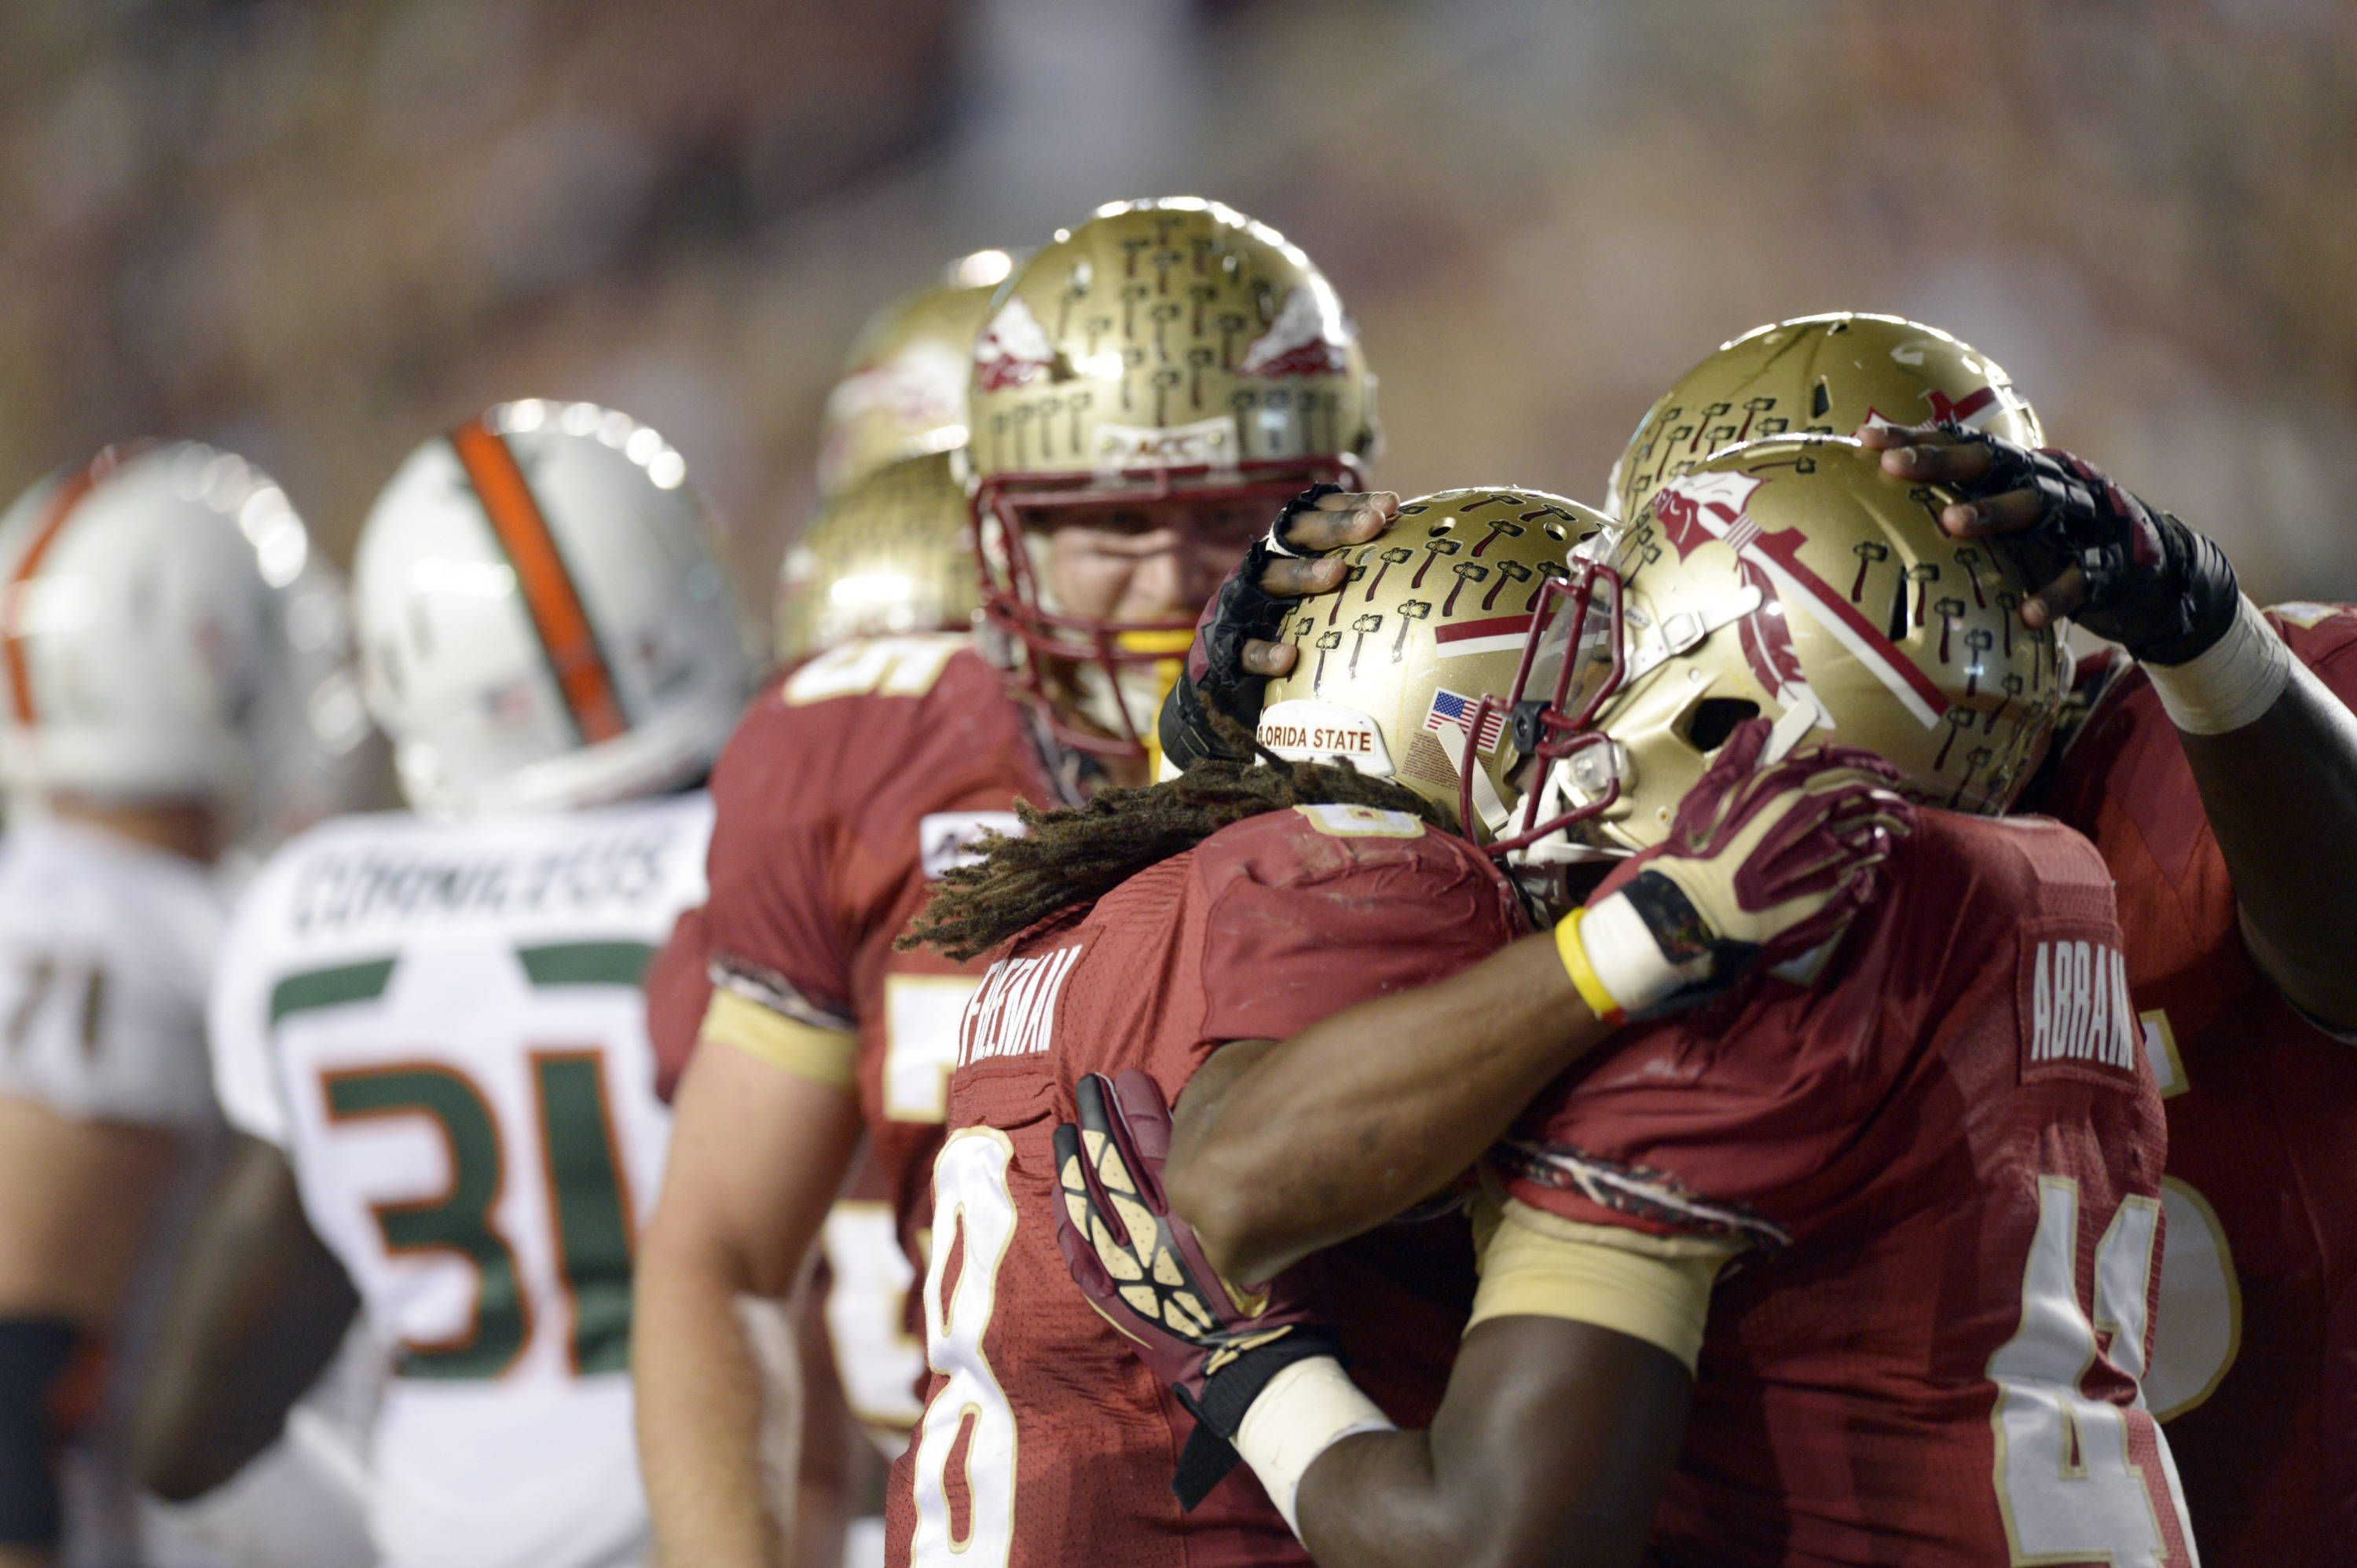 Florida State Seminoles running back Devonta Freeman (8) celebrates his touchdown with fullback Chad Abram (41) and offensive linesman Cameron Erving (75) against the Miami Hurricanes during the first quarter at Doak Campbell Stadium. Mandatory Credit: John David Mercer-USA TODAY Sports